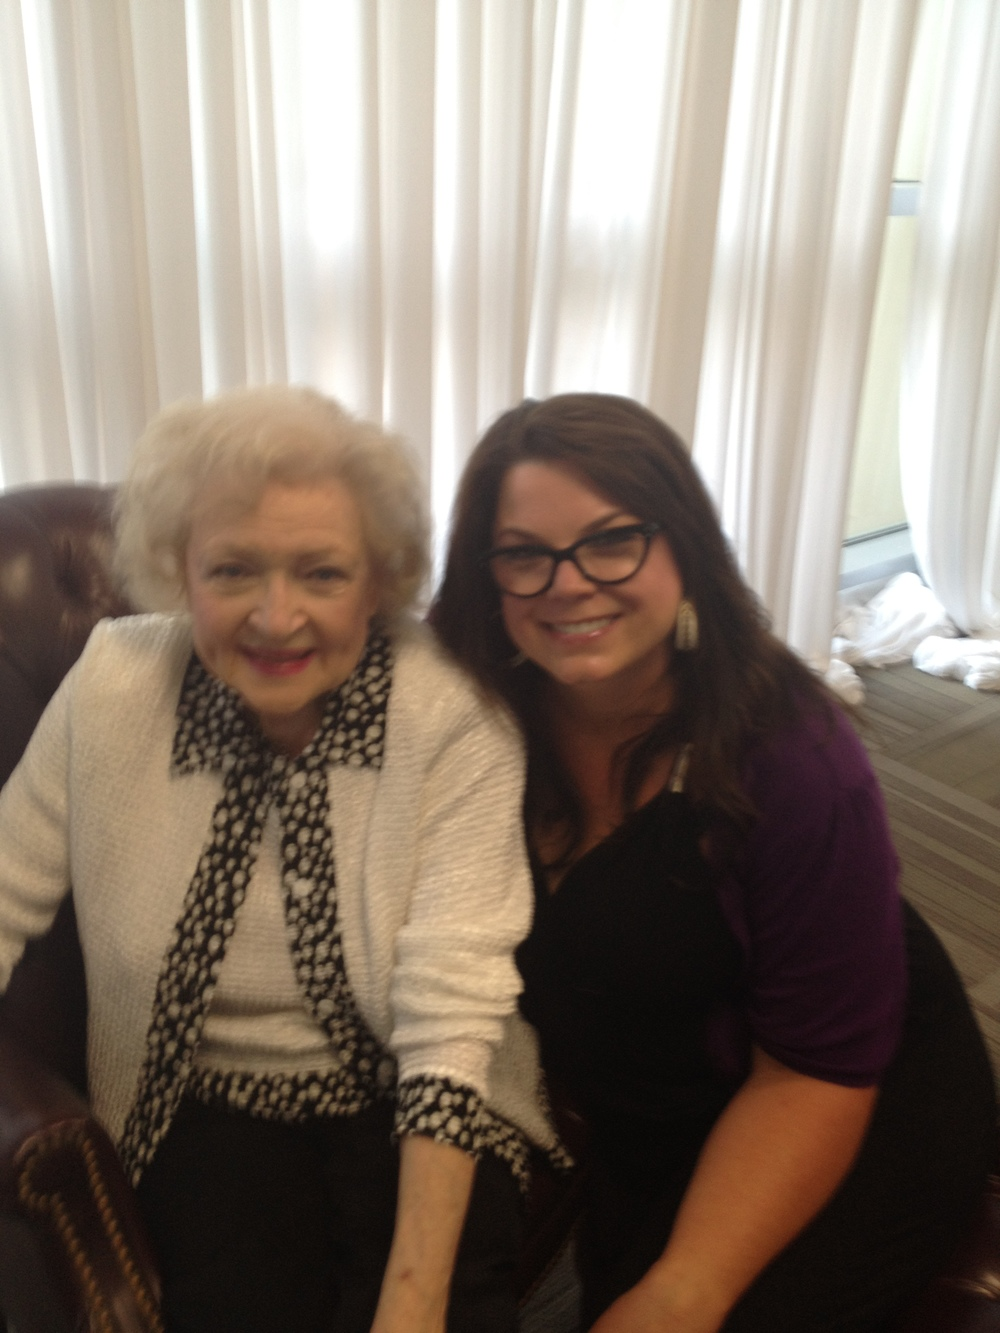 ME AND THE ICONIC BETTY WHITE